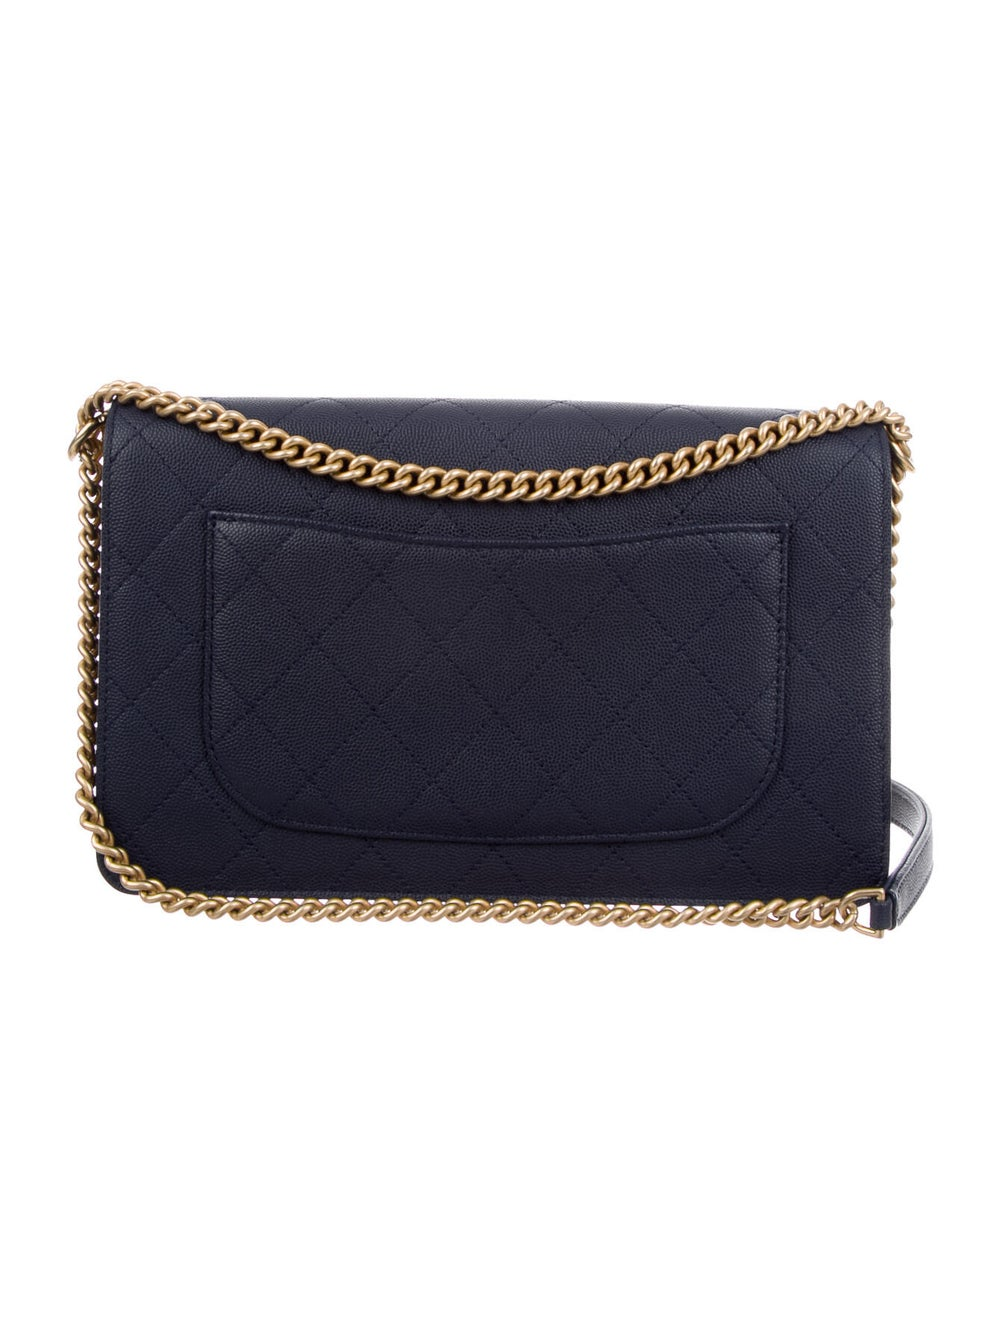 Chanel Suede Lady Coco Flap Bag Blue - image 3